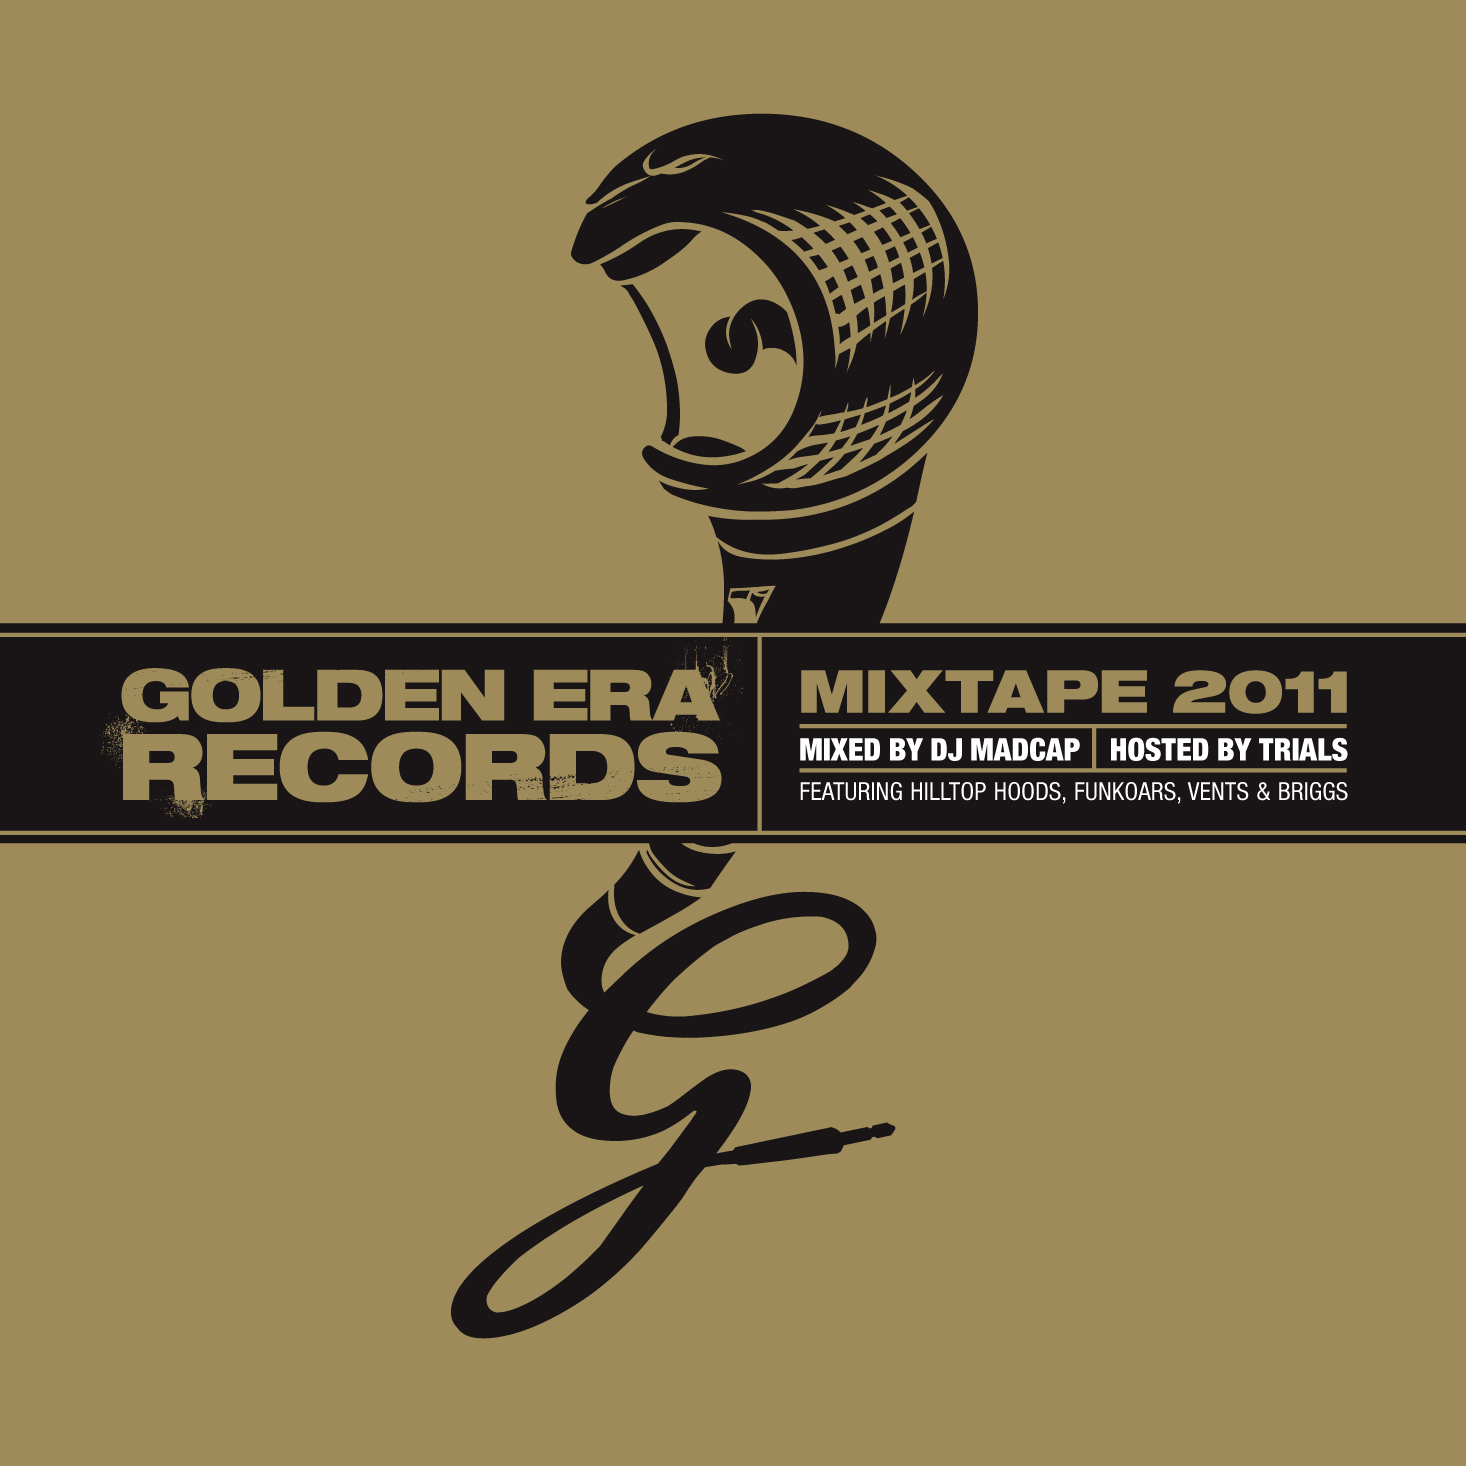 GOLDEN ERA MIXTAPE 2011